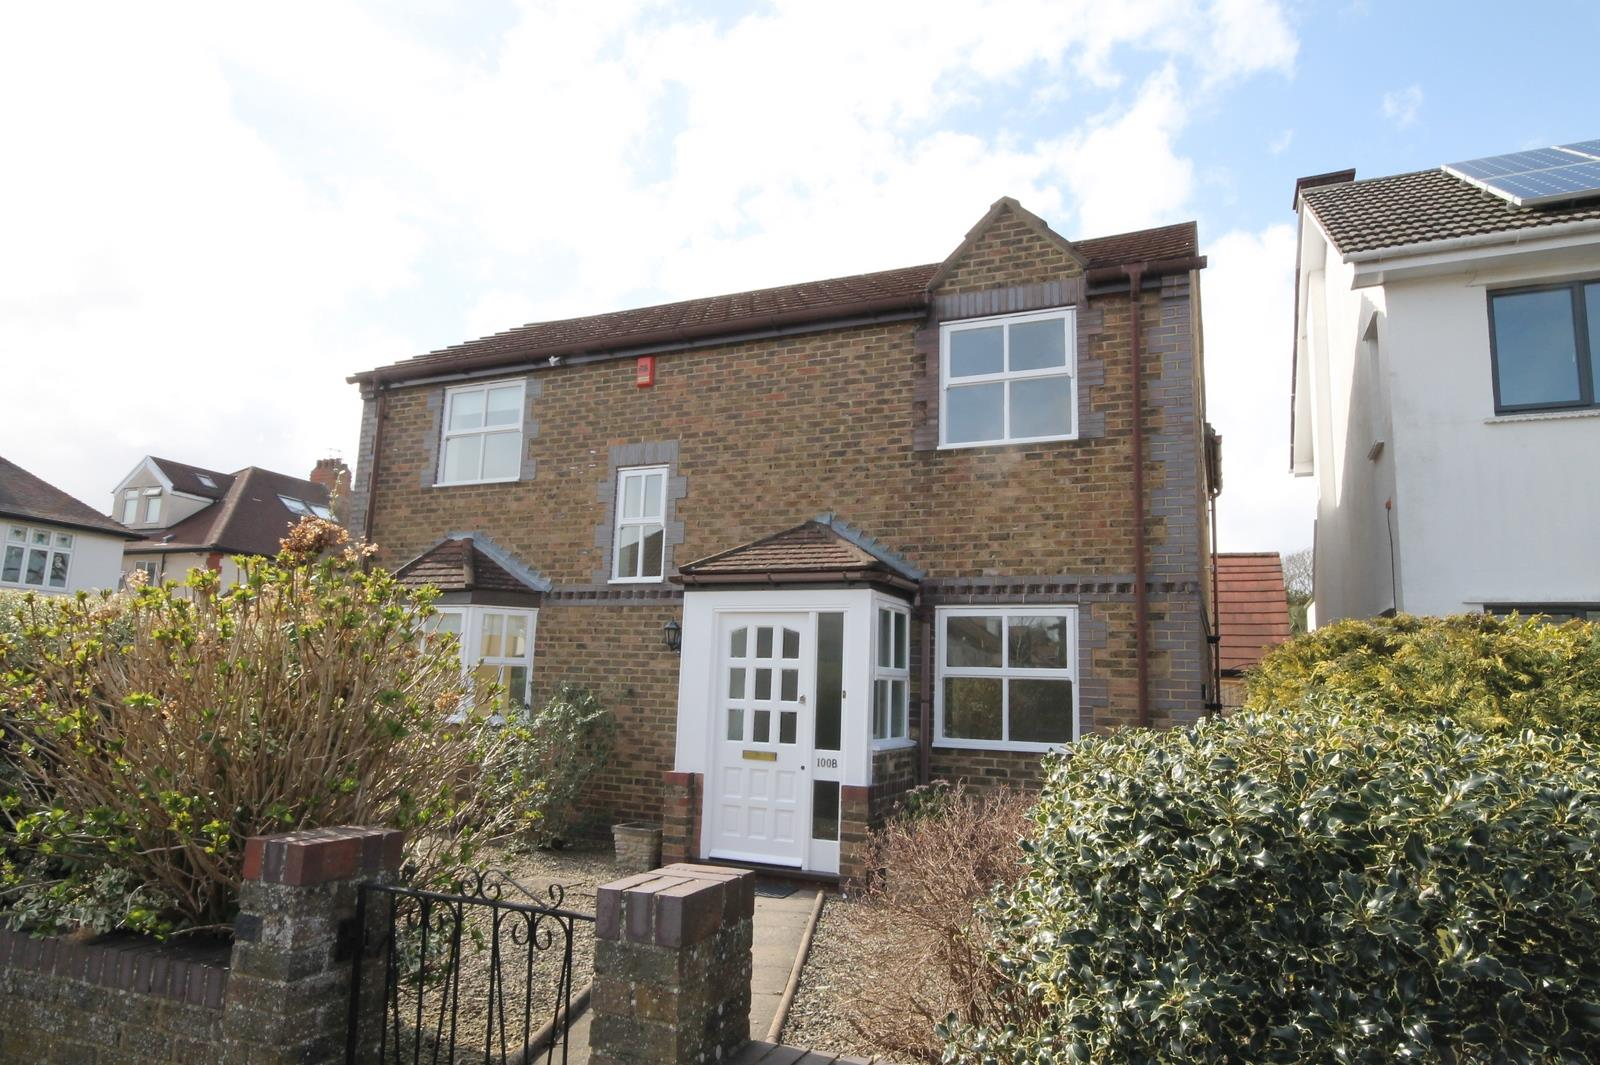 4 bed house to rent in Reedley Road, Bristol - Property Image 1